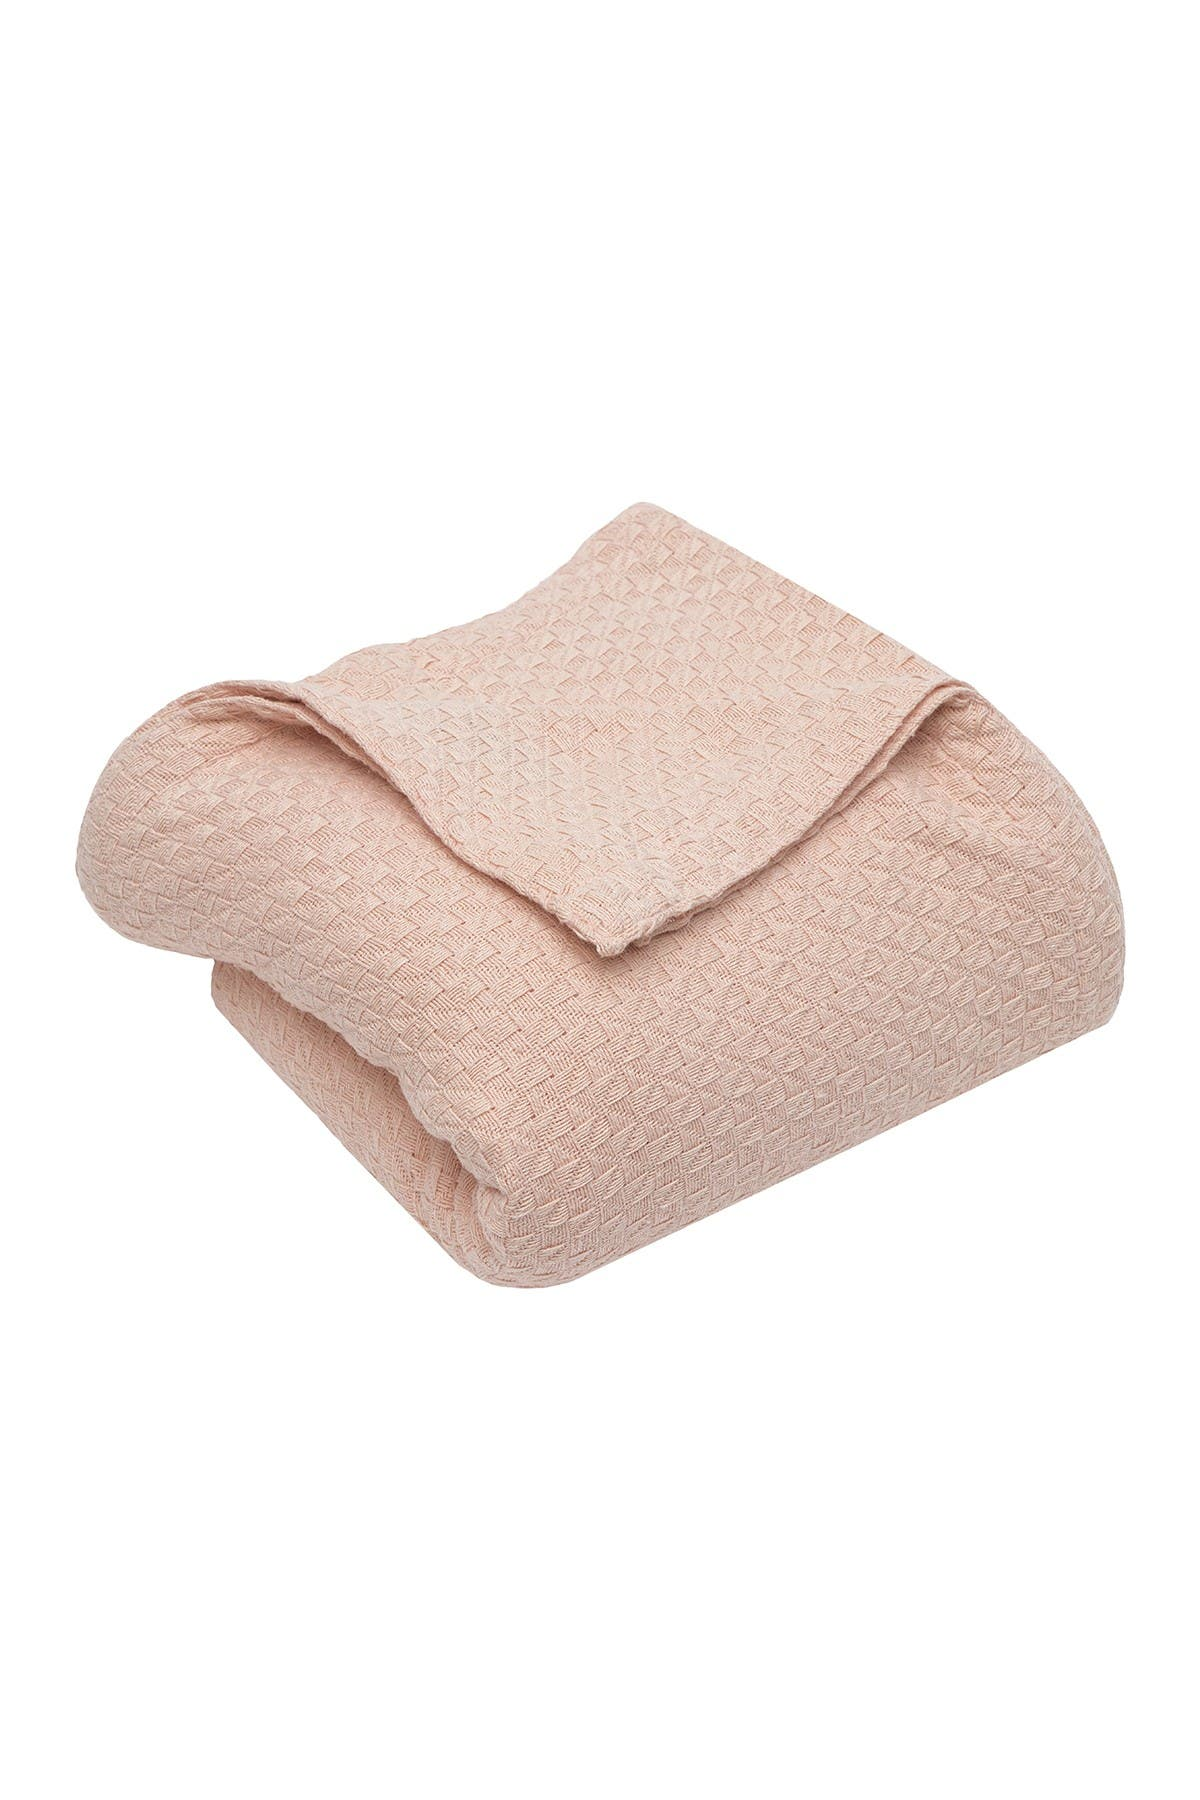 """Image of Duck River Textile King Carrie Cotton Throw Blanket - Blush - 90"""" x 104"""""""